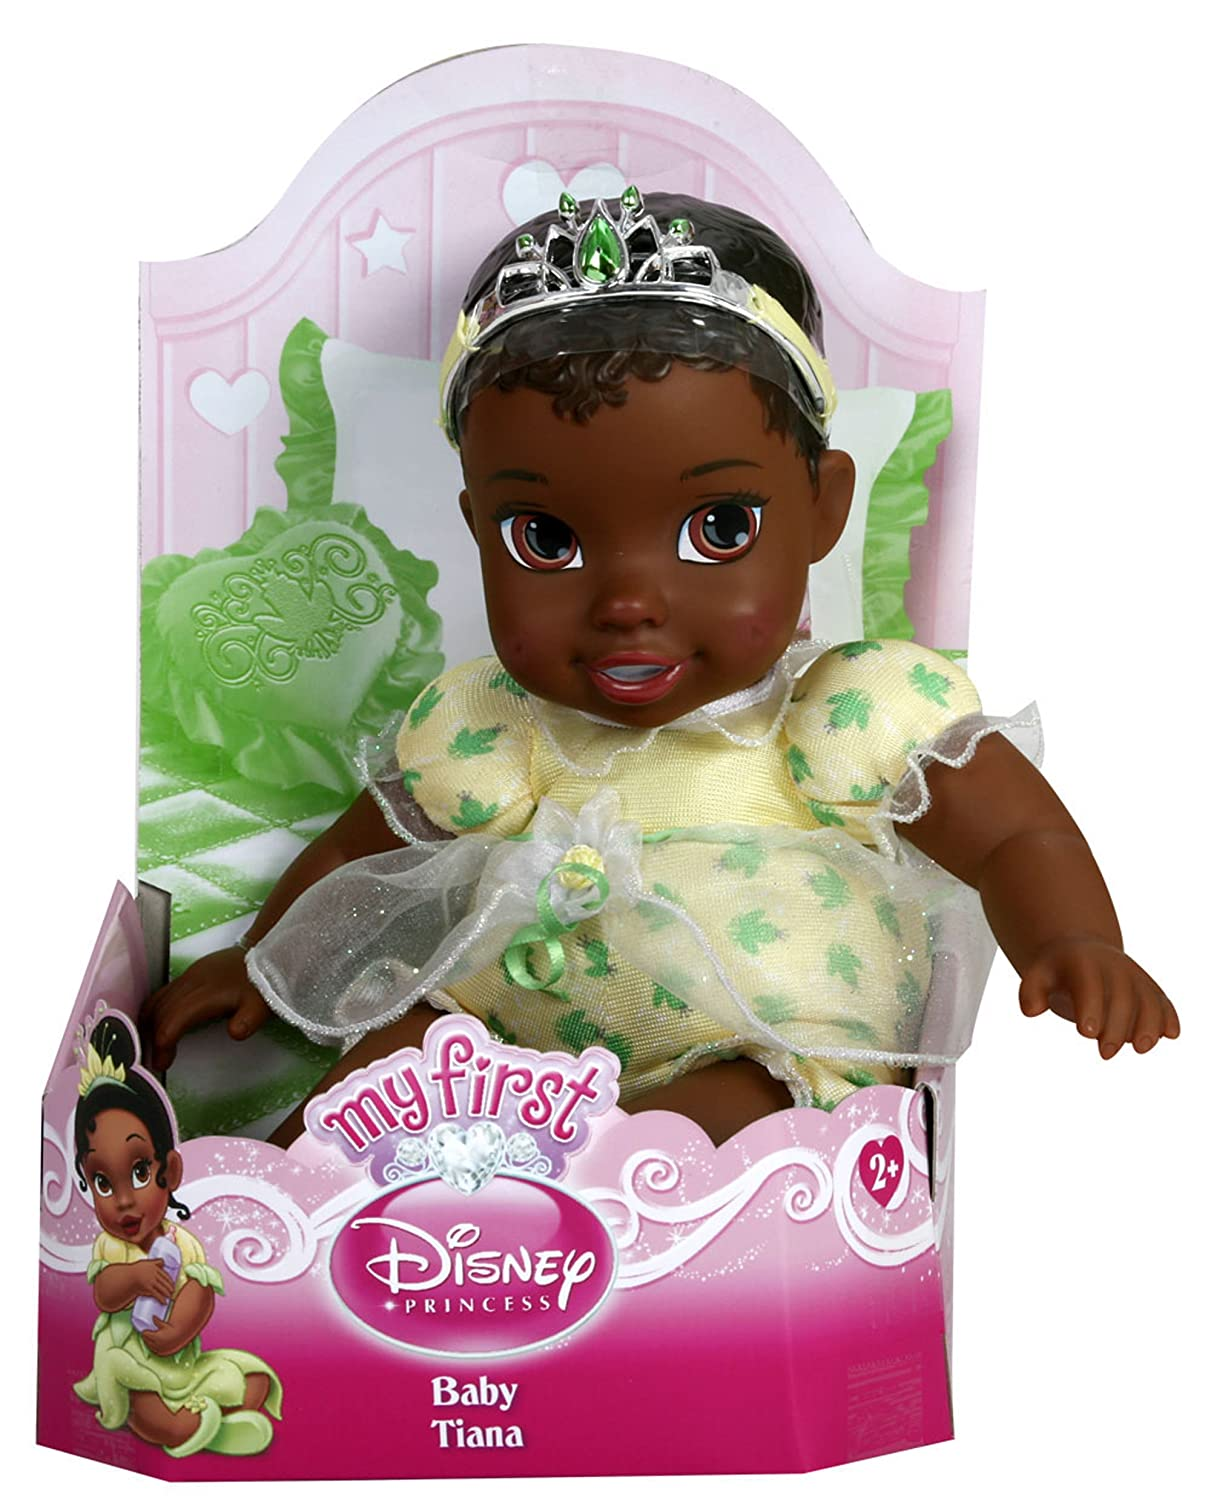 Amazoncom Disney Princess Baby Doll  Tiana Toys  Games